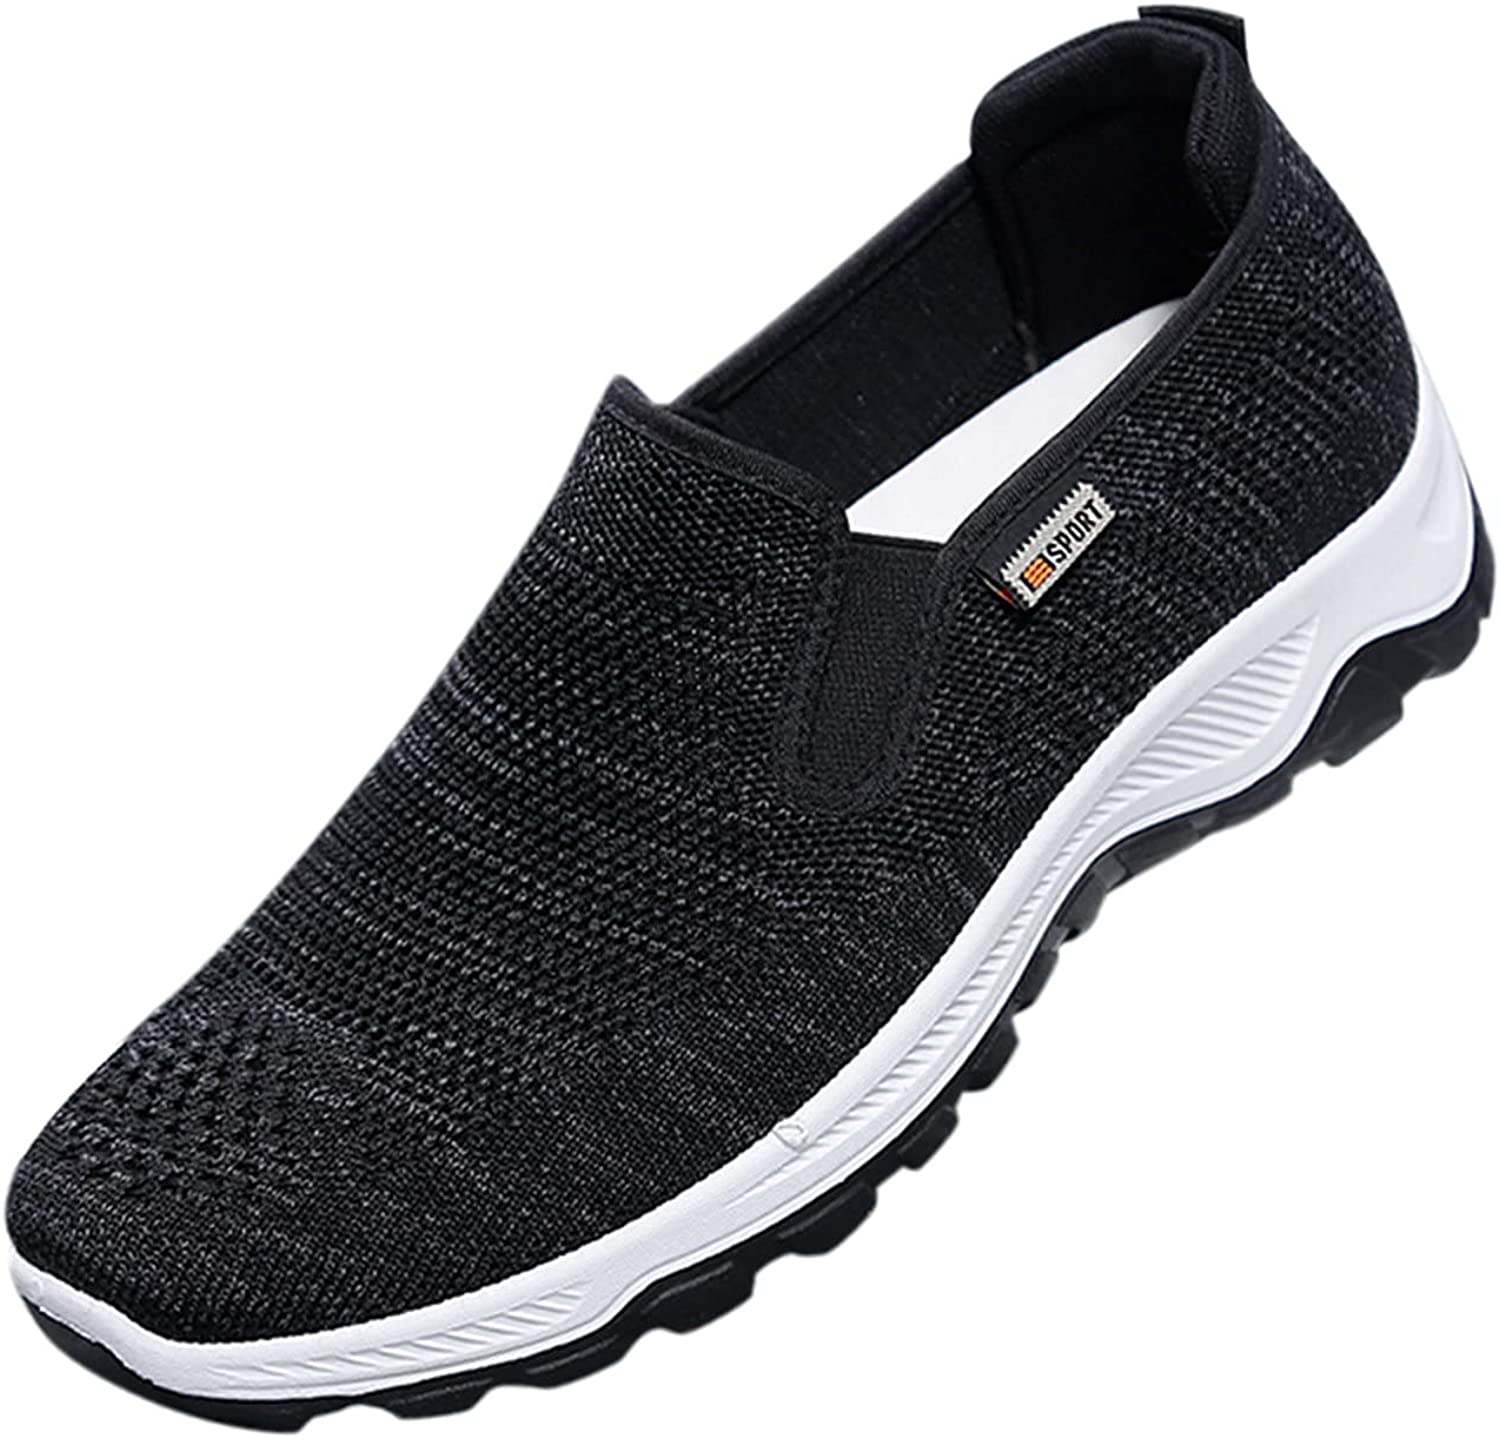 Men's Shoes Fashion Lightweight Breathable Soft Sole Casual Sports Shoes Shoes Sneakers Loafers Oxfords Sandals Women Shoes Sport